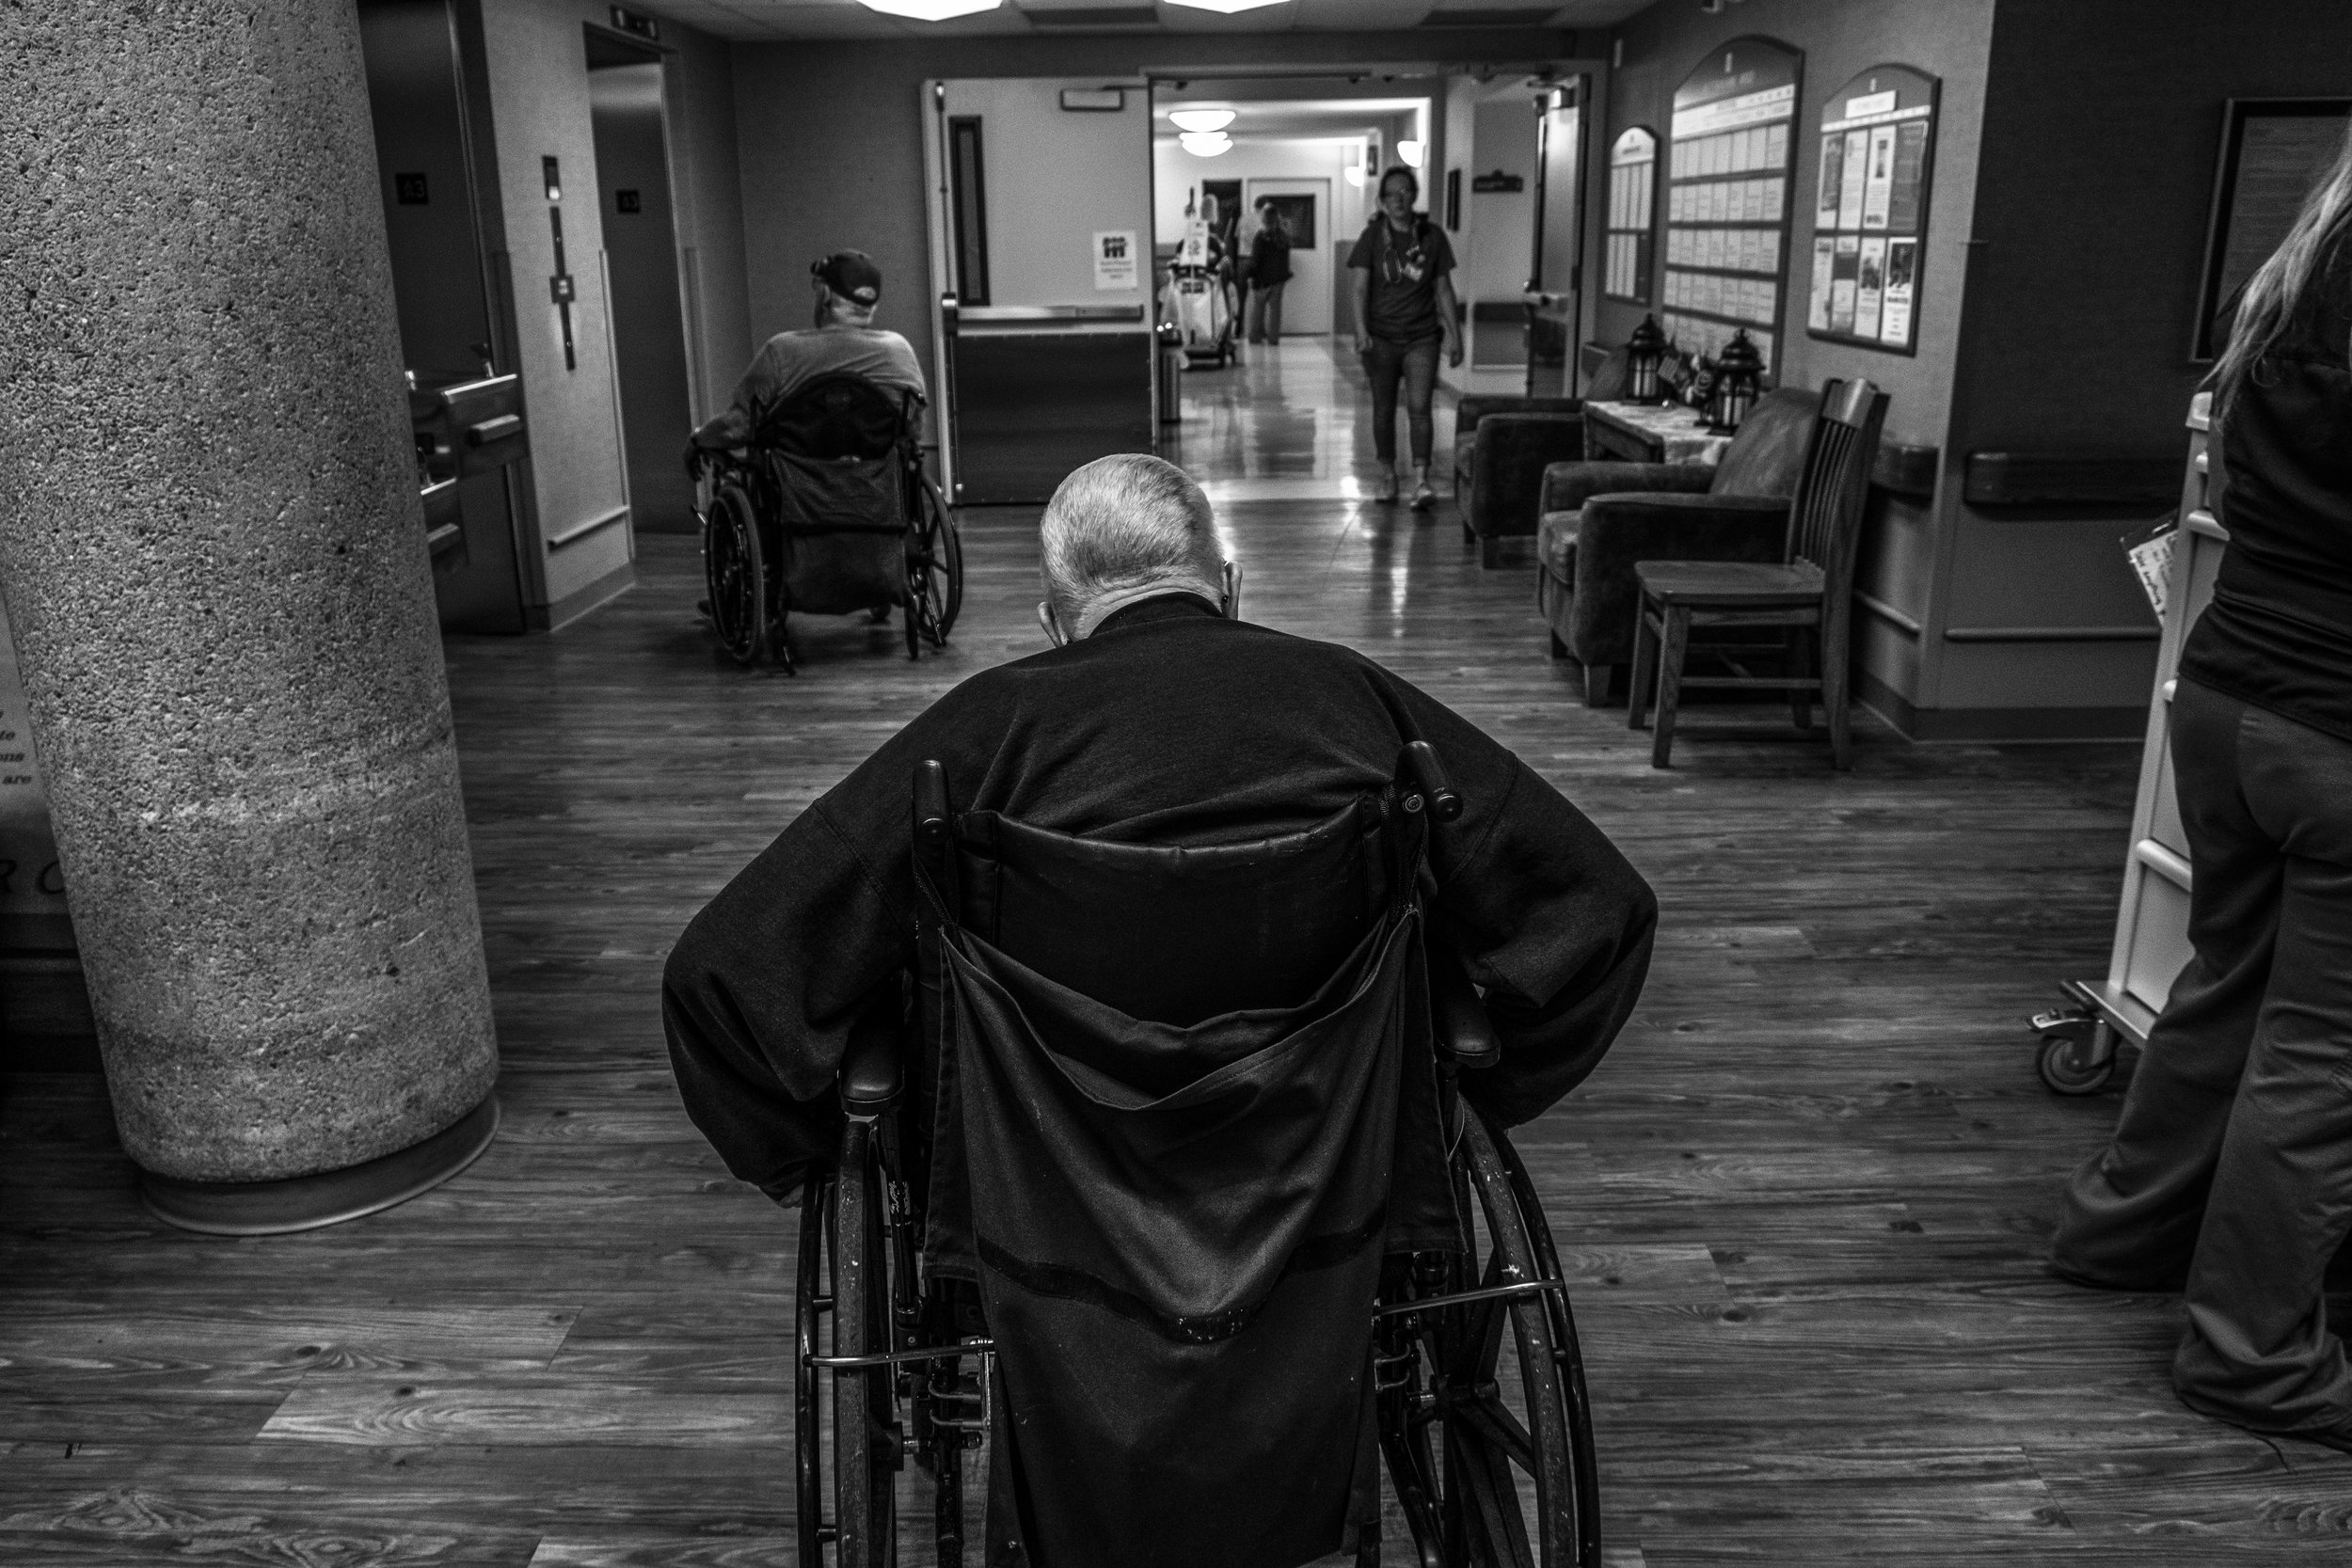 Veterans head to the elevator at the Missouri Veterans Home in Mexico, Missouri on Friday, Jun. 21, 2019. The Missouri Veterans home cares for 150 veterans from all branches of the military.